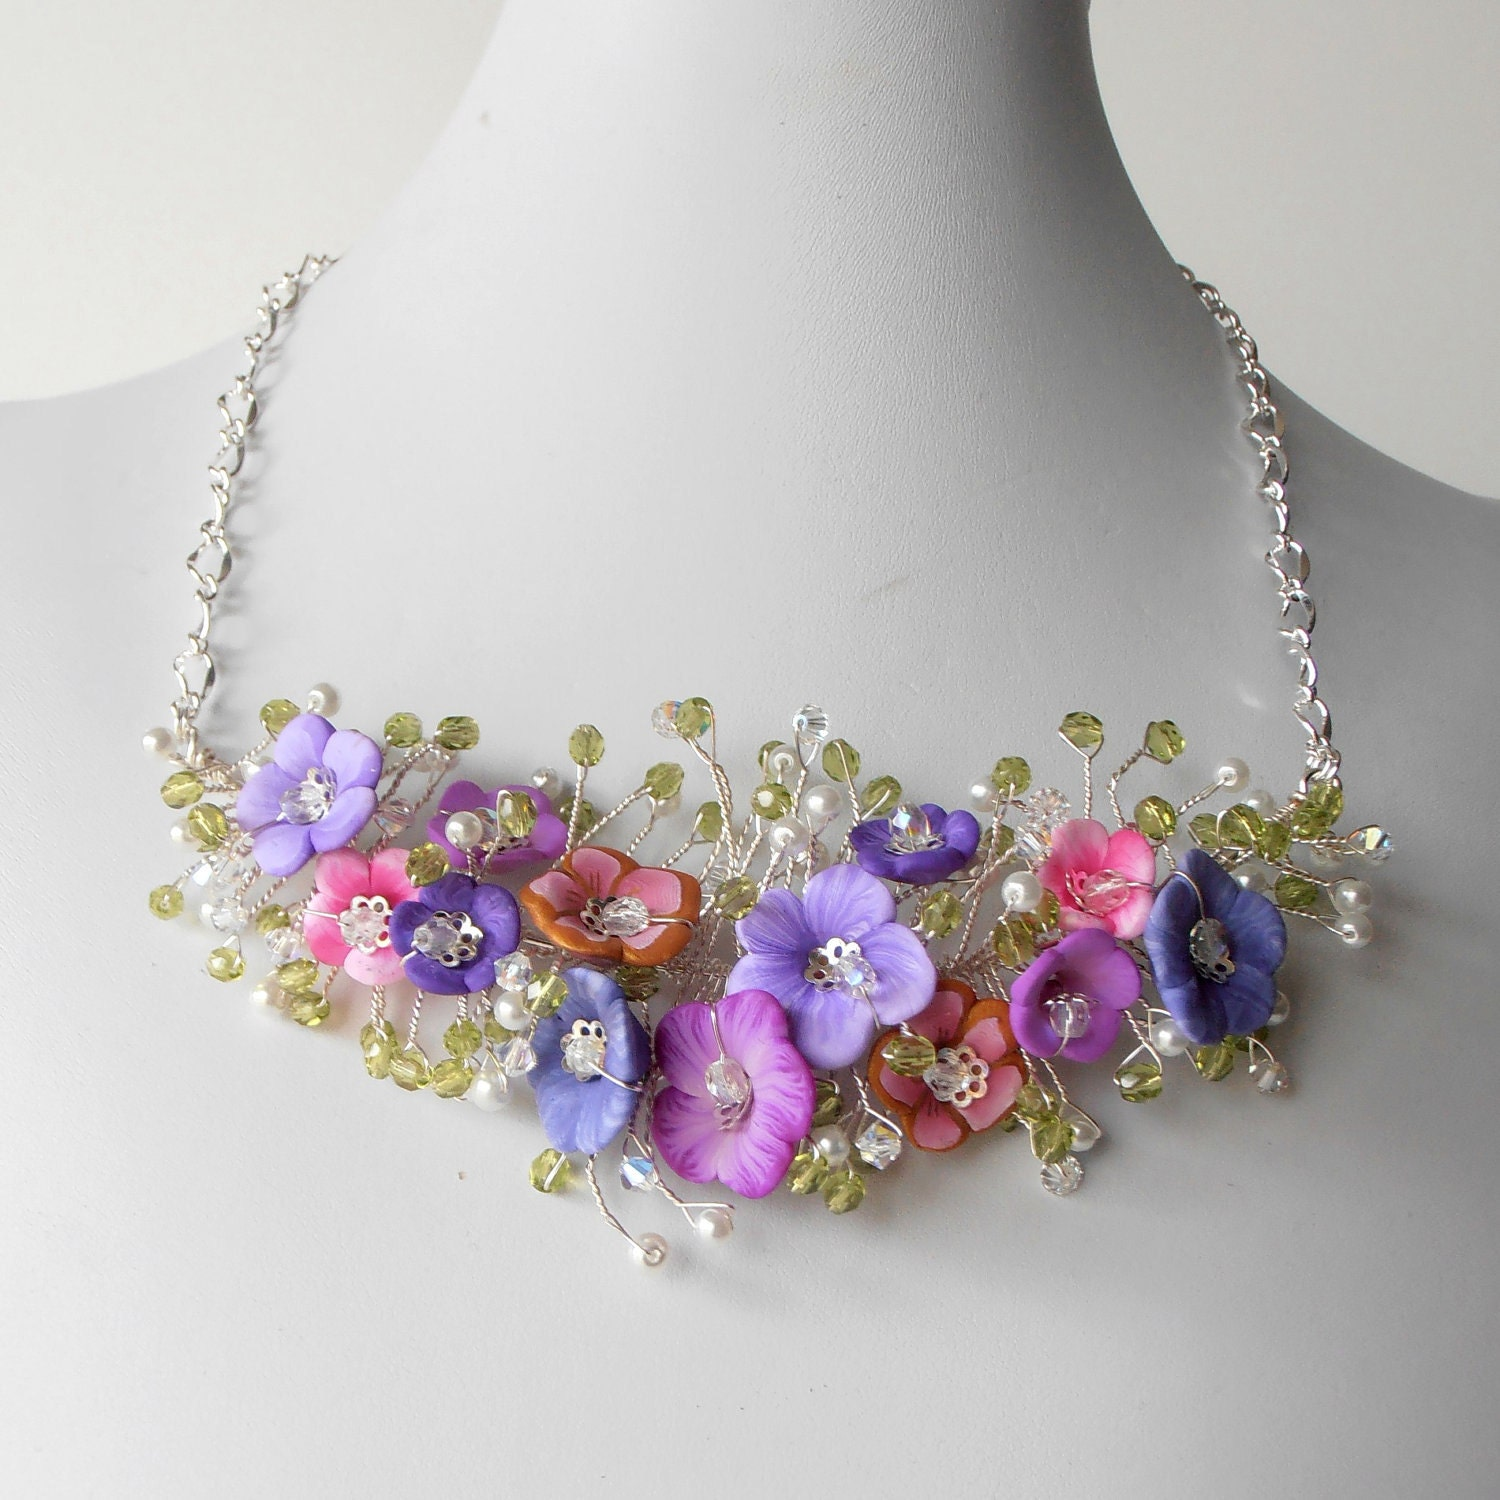 fivelittlegems necklace